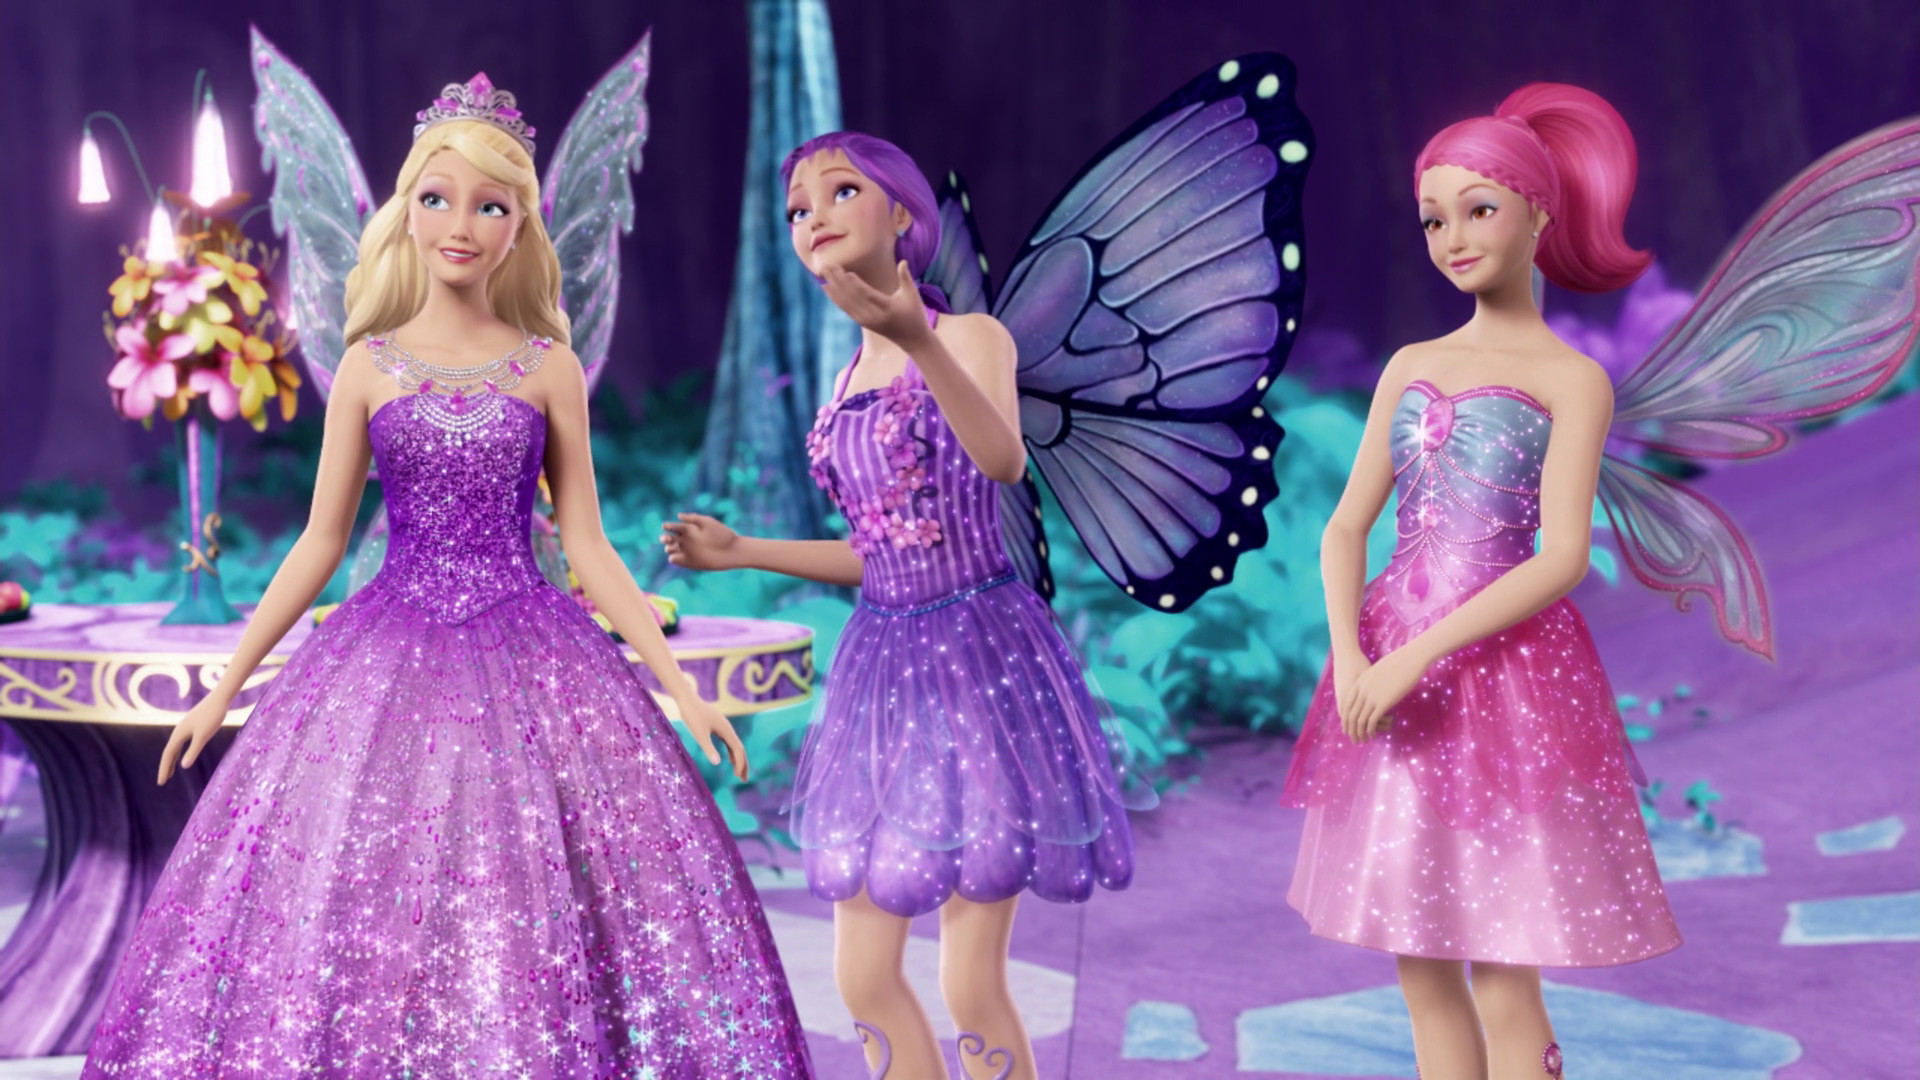 0 Free Barbie Movie Wallpapers Download Free Desktop New Barbie Movie 2018 1920x1080 Download Hd Wallpaper Wallpapertip